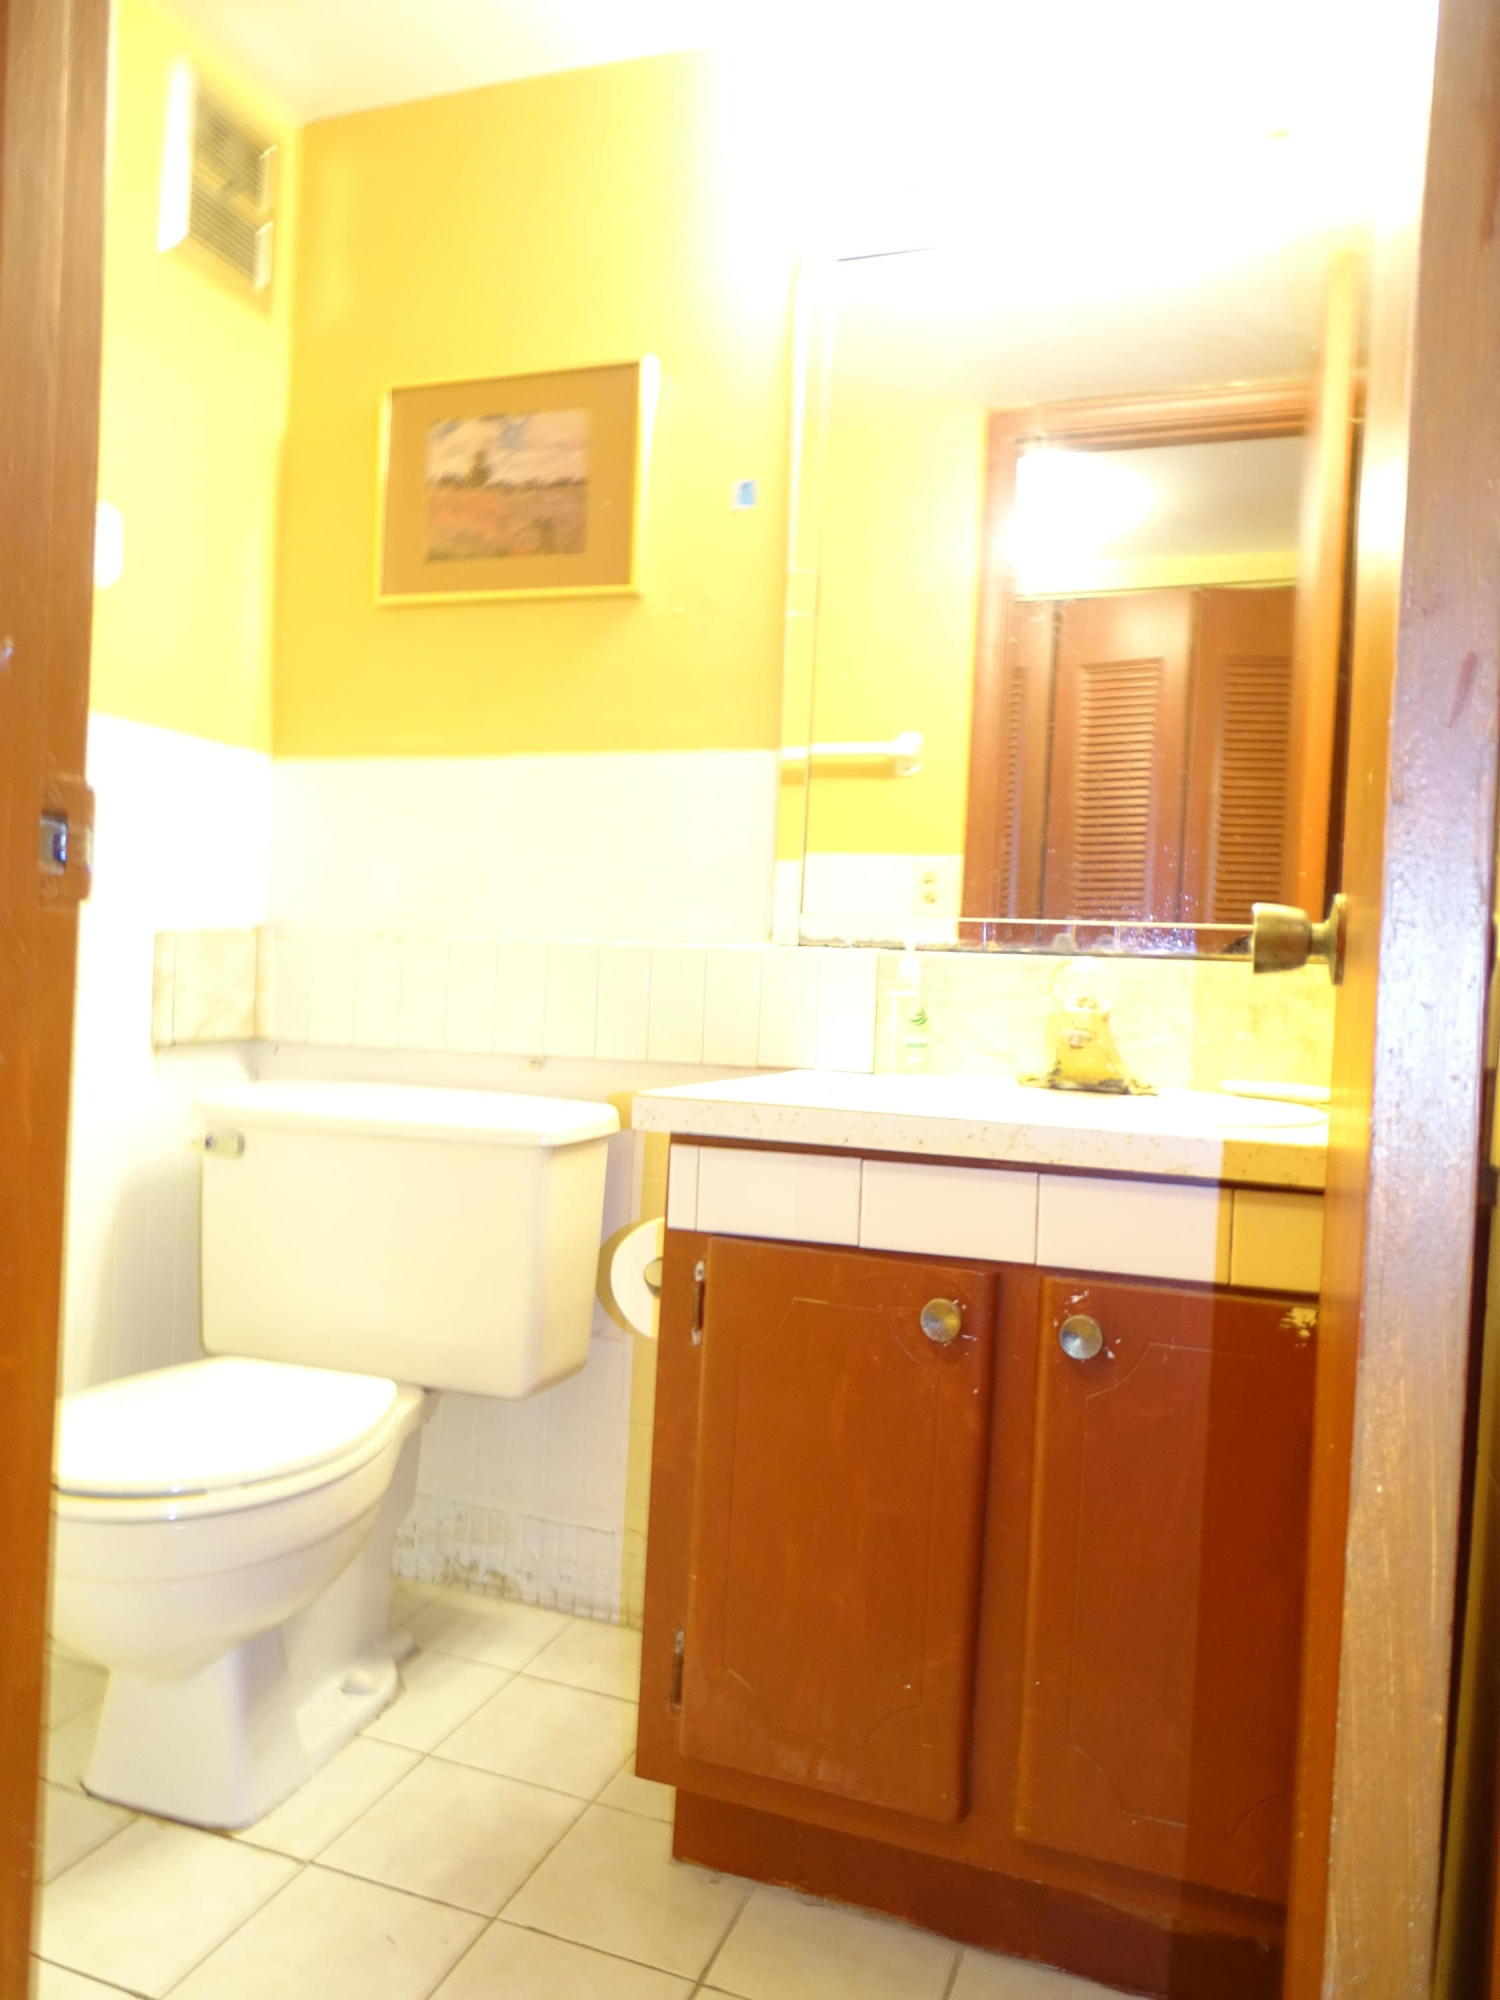 63 Kent D, West Palm Beach, Florida 33417, 1 Bedroom Bedrooms, ,1 BathroomBathrooms,Residential,for Rent,Kent D,RX-10655706, , , ,for Rent